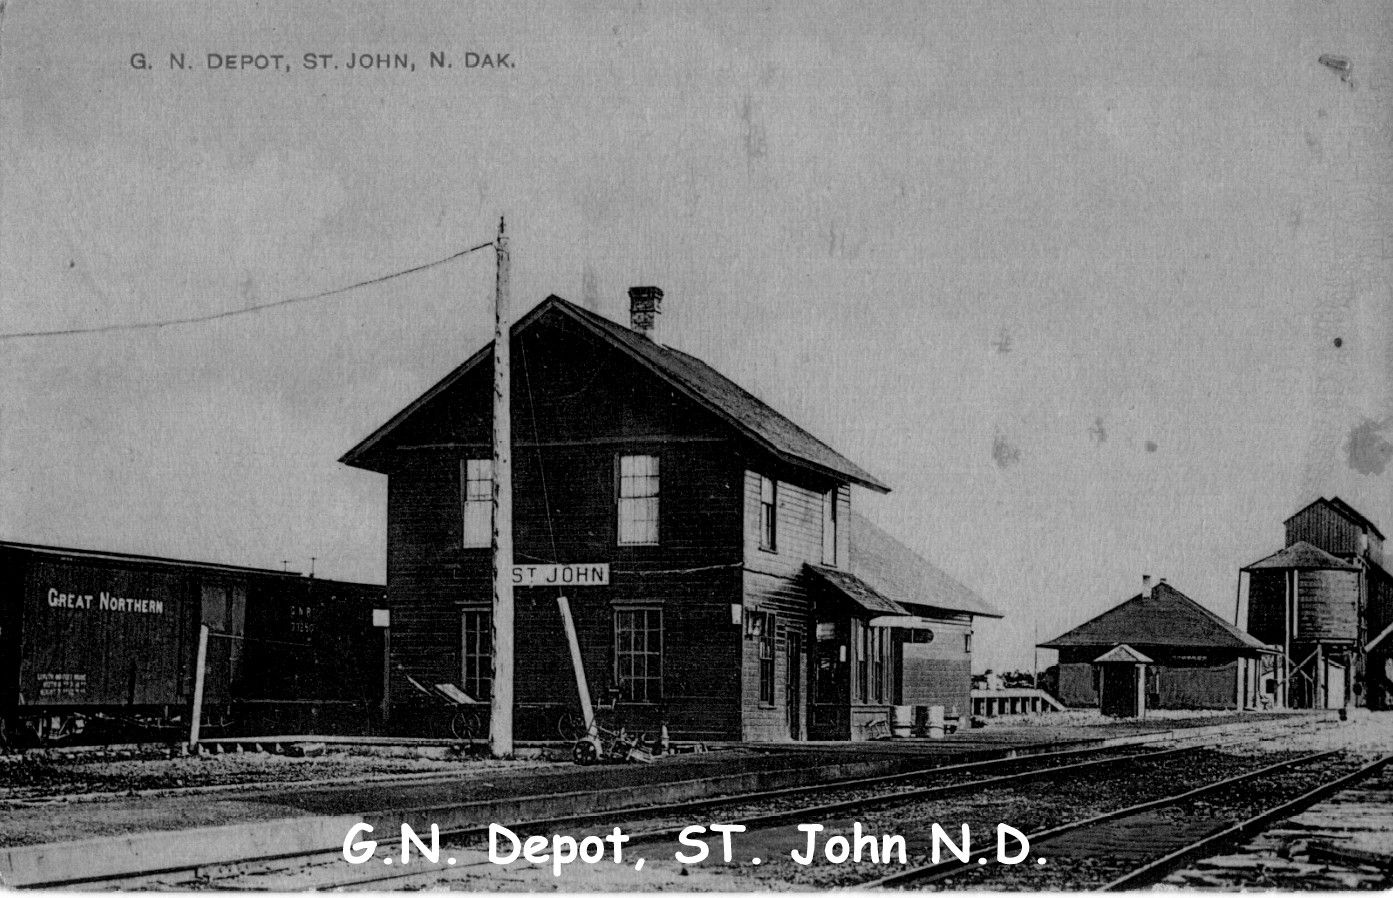 Great Northern Railway Terminal St John circa 1908